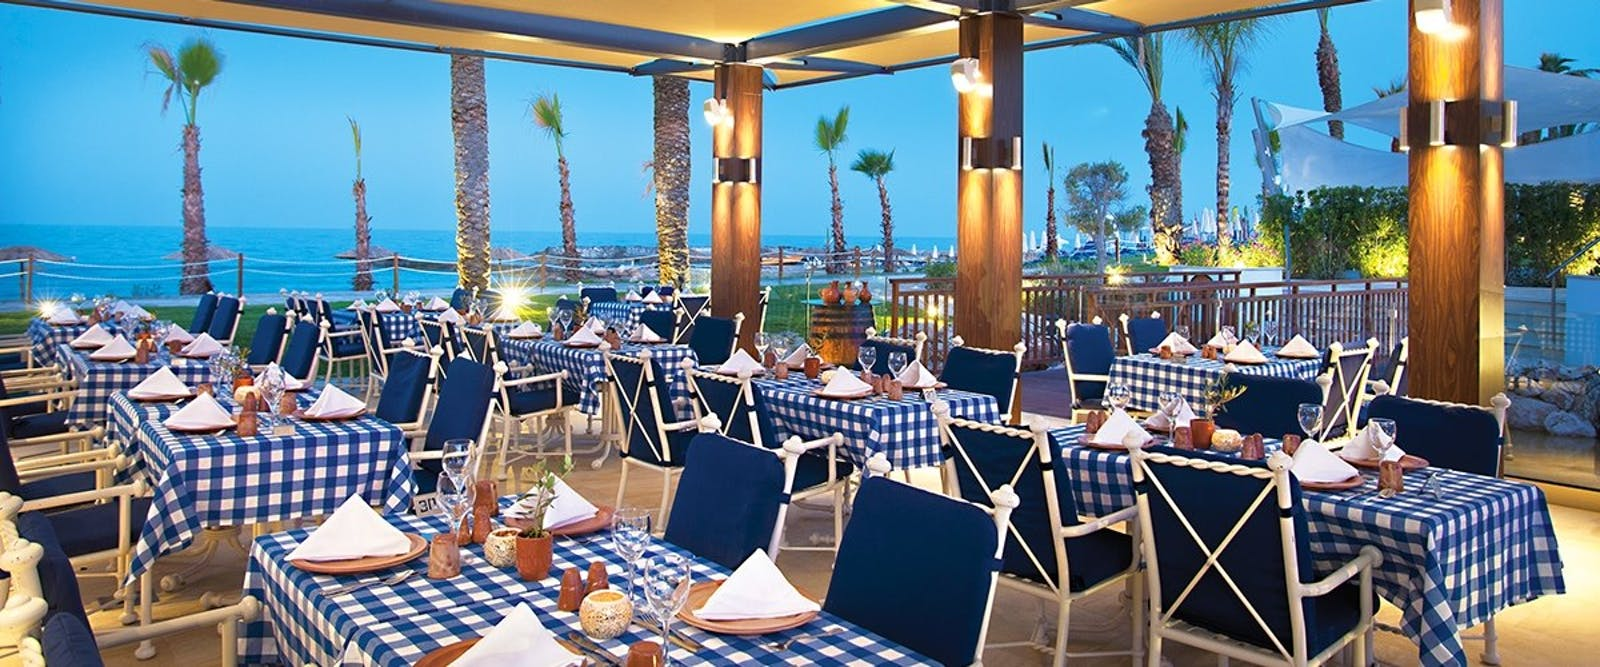 Dining Area, Olympic Lagoon Resort, Paphos, Cyprus